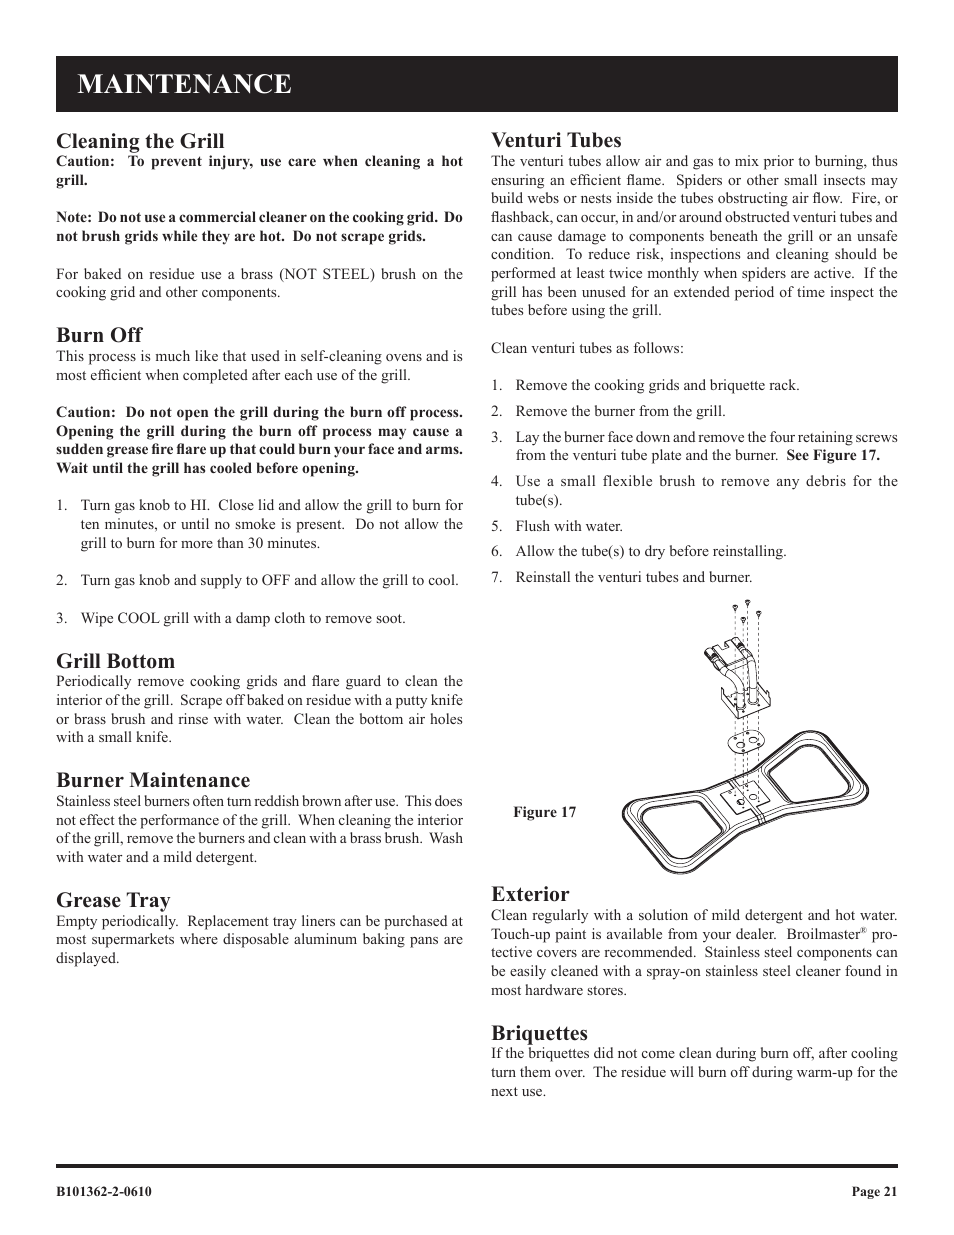 maintenance cleaning the grill burn off broilmaster p3fblw2 user manual page 21 24 - Broilmaster